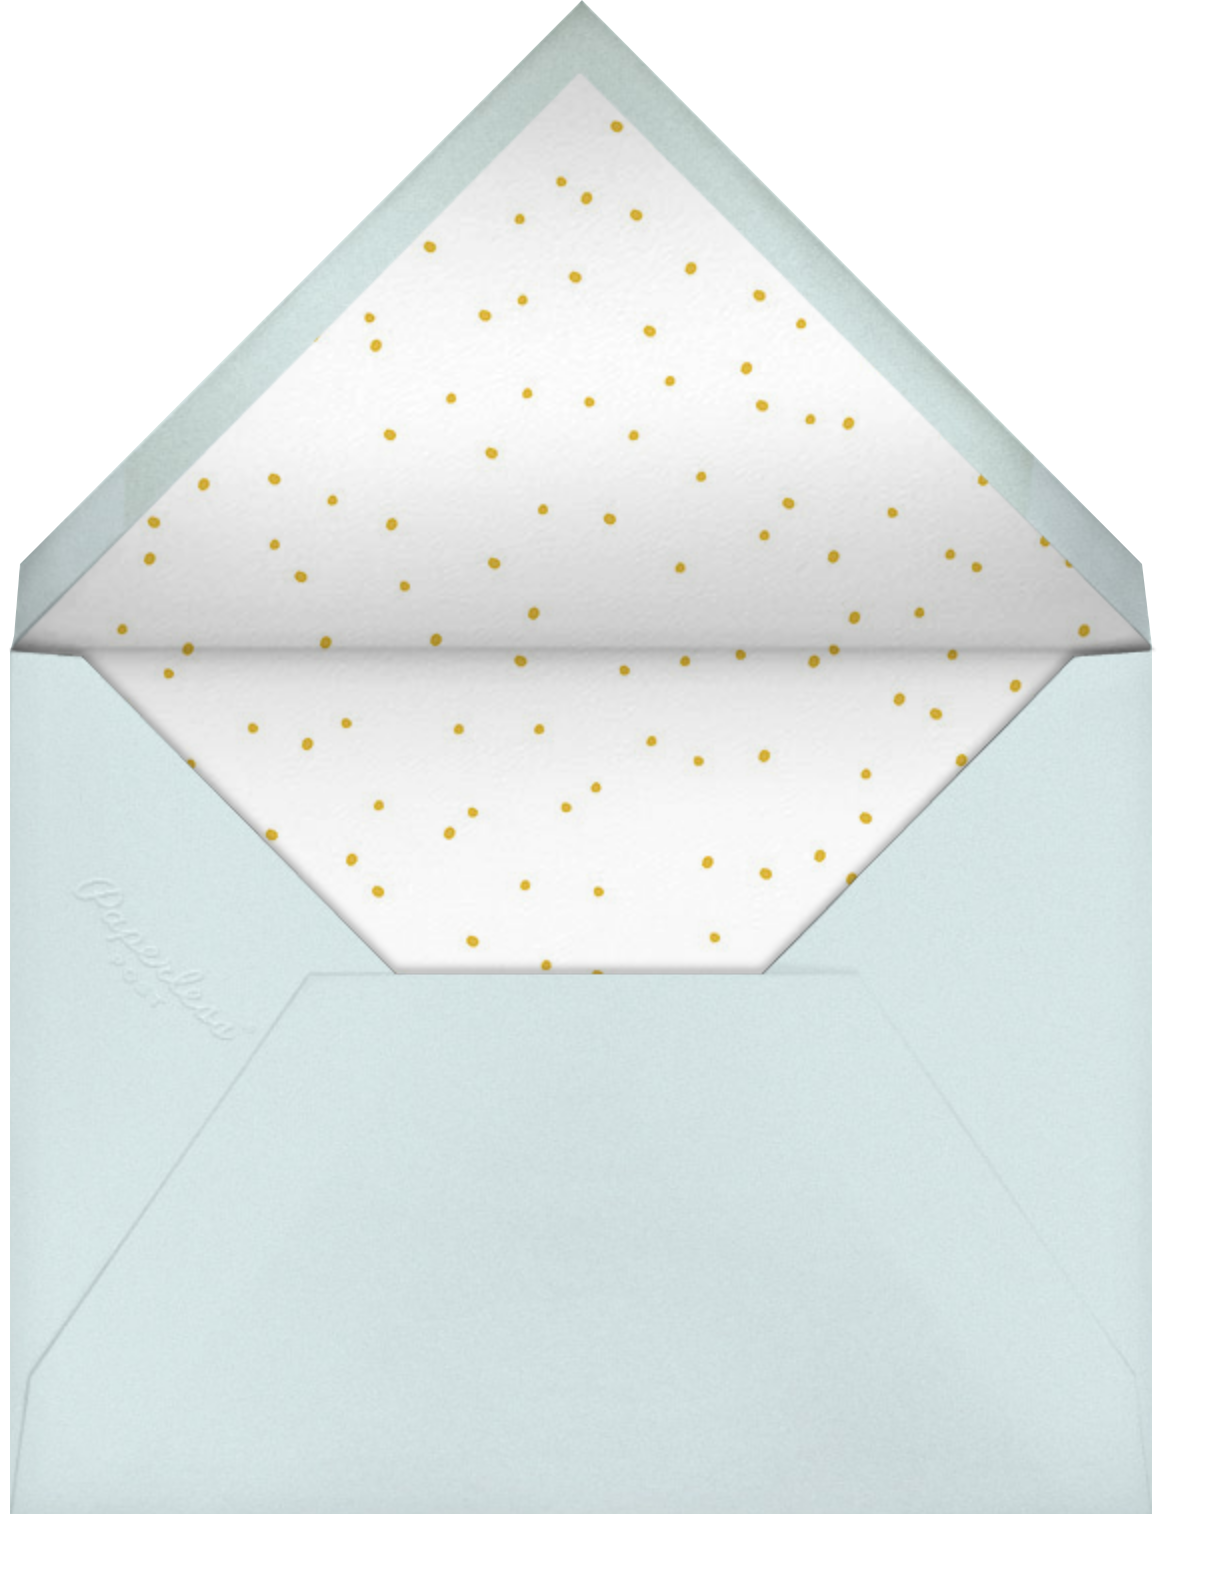 Shared Space - Little Cube - Thinking of you - envelope back